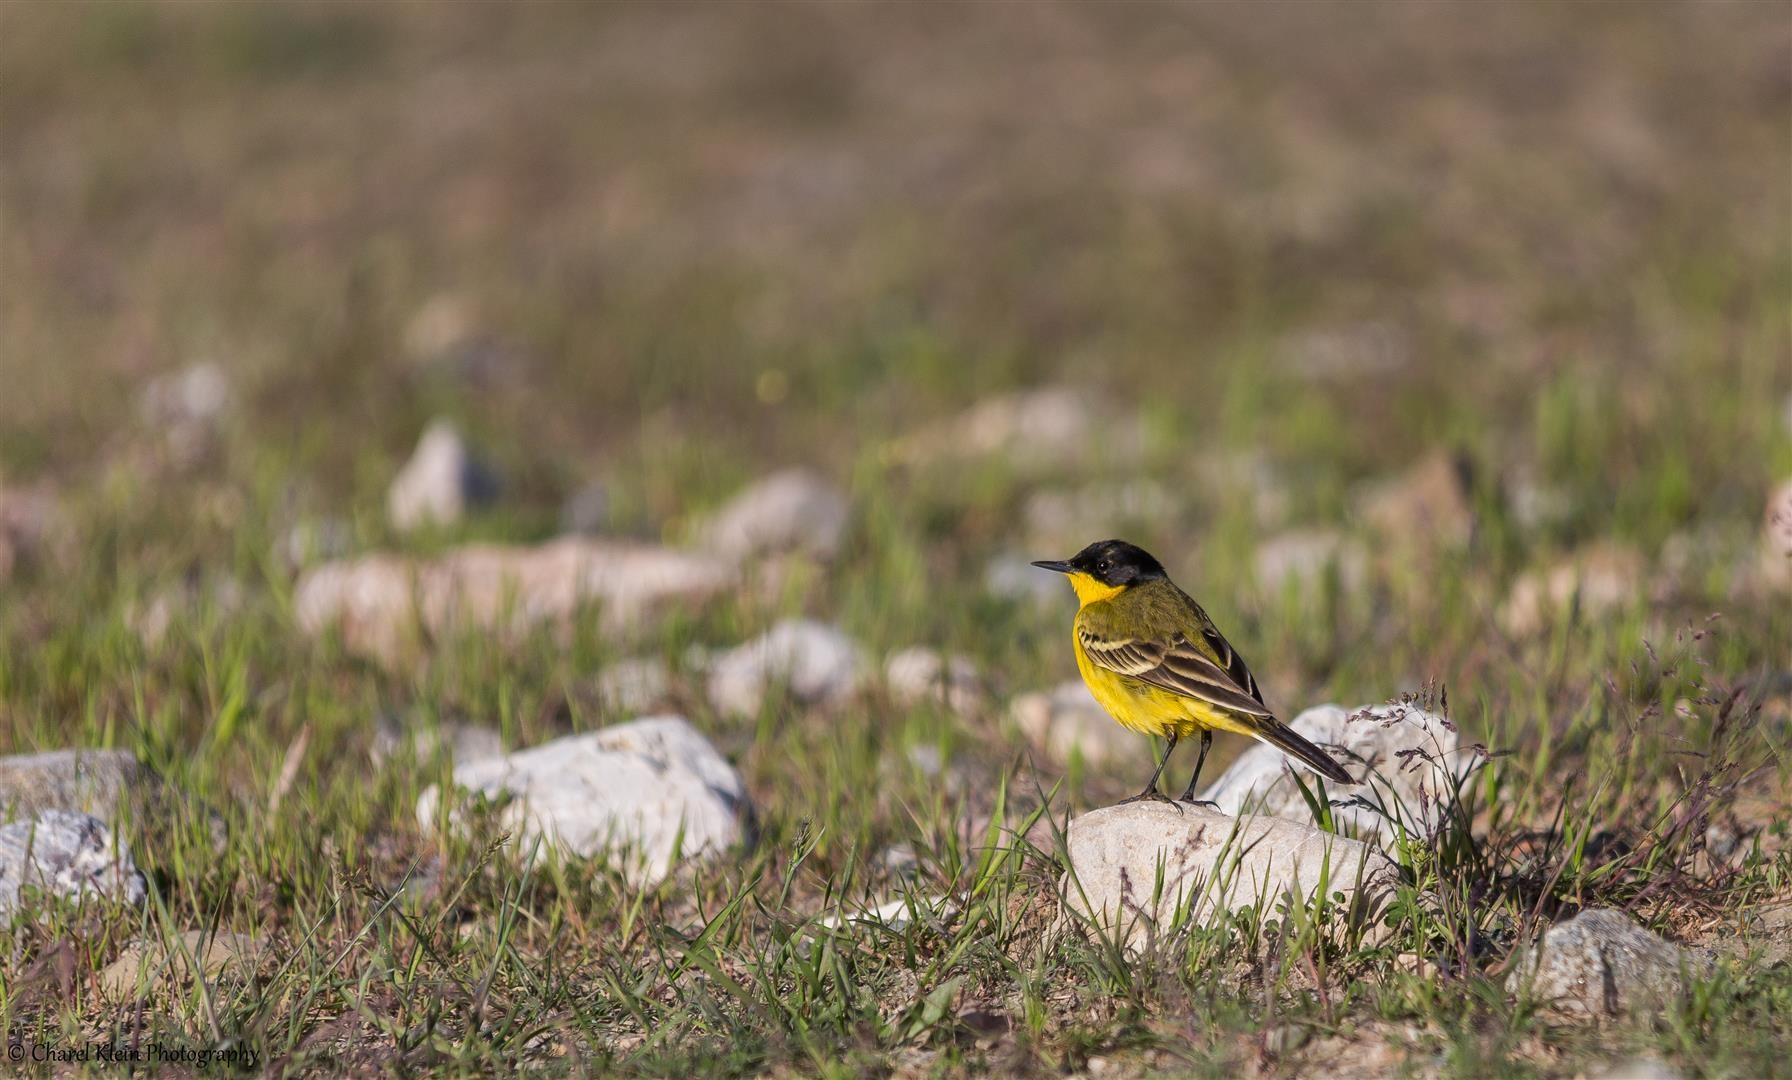 Black-headed Wagtail (Motacilla flava feldegg) -- Birdingtrip Turkey 2015